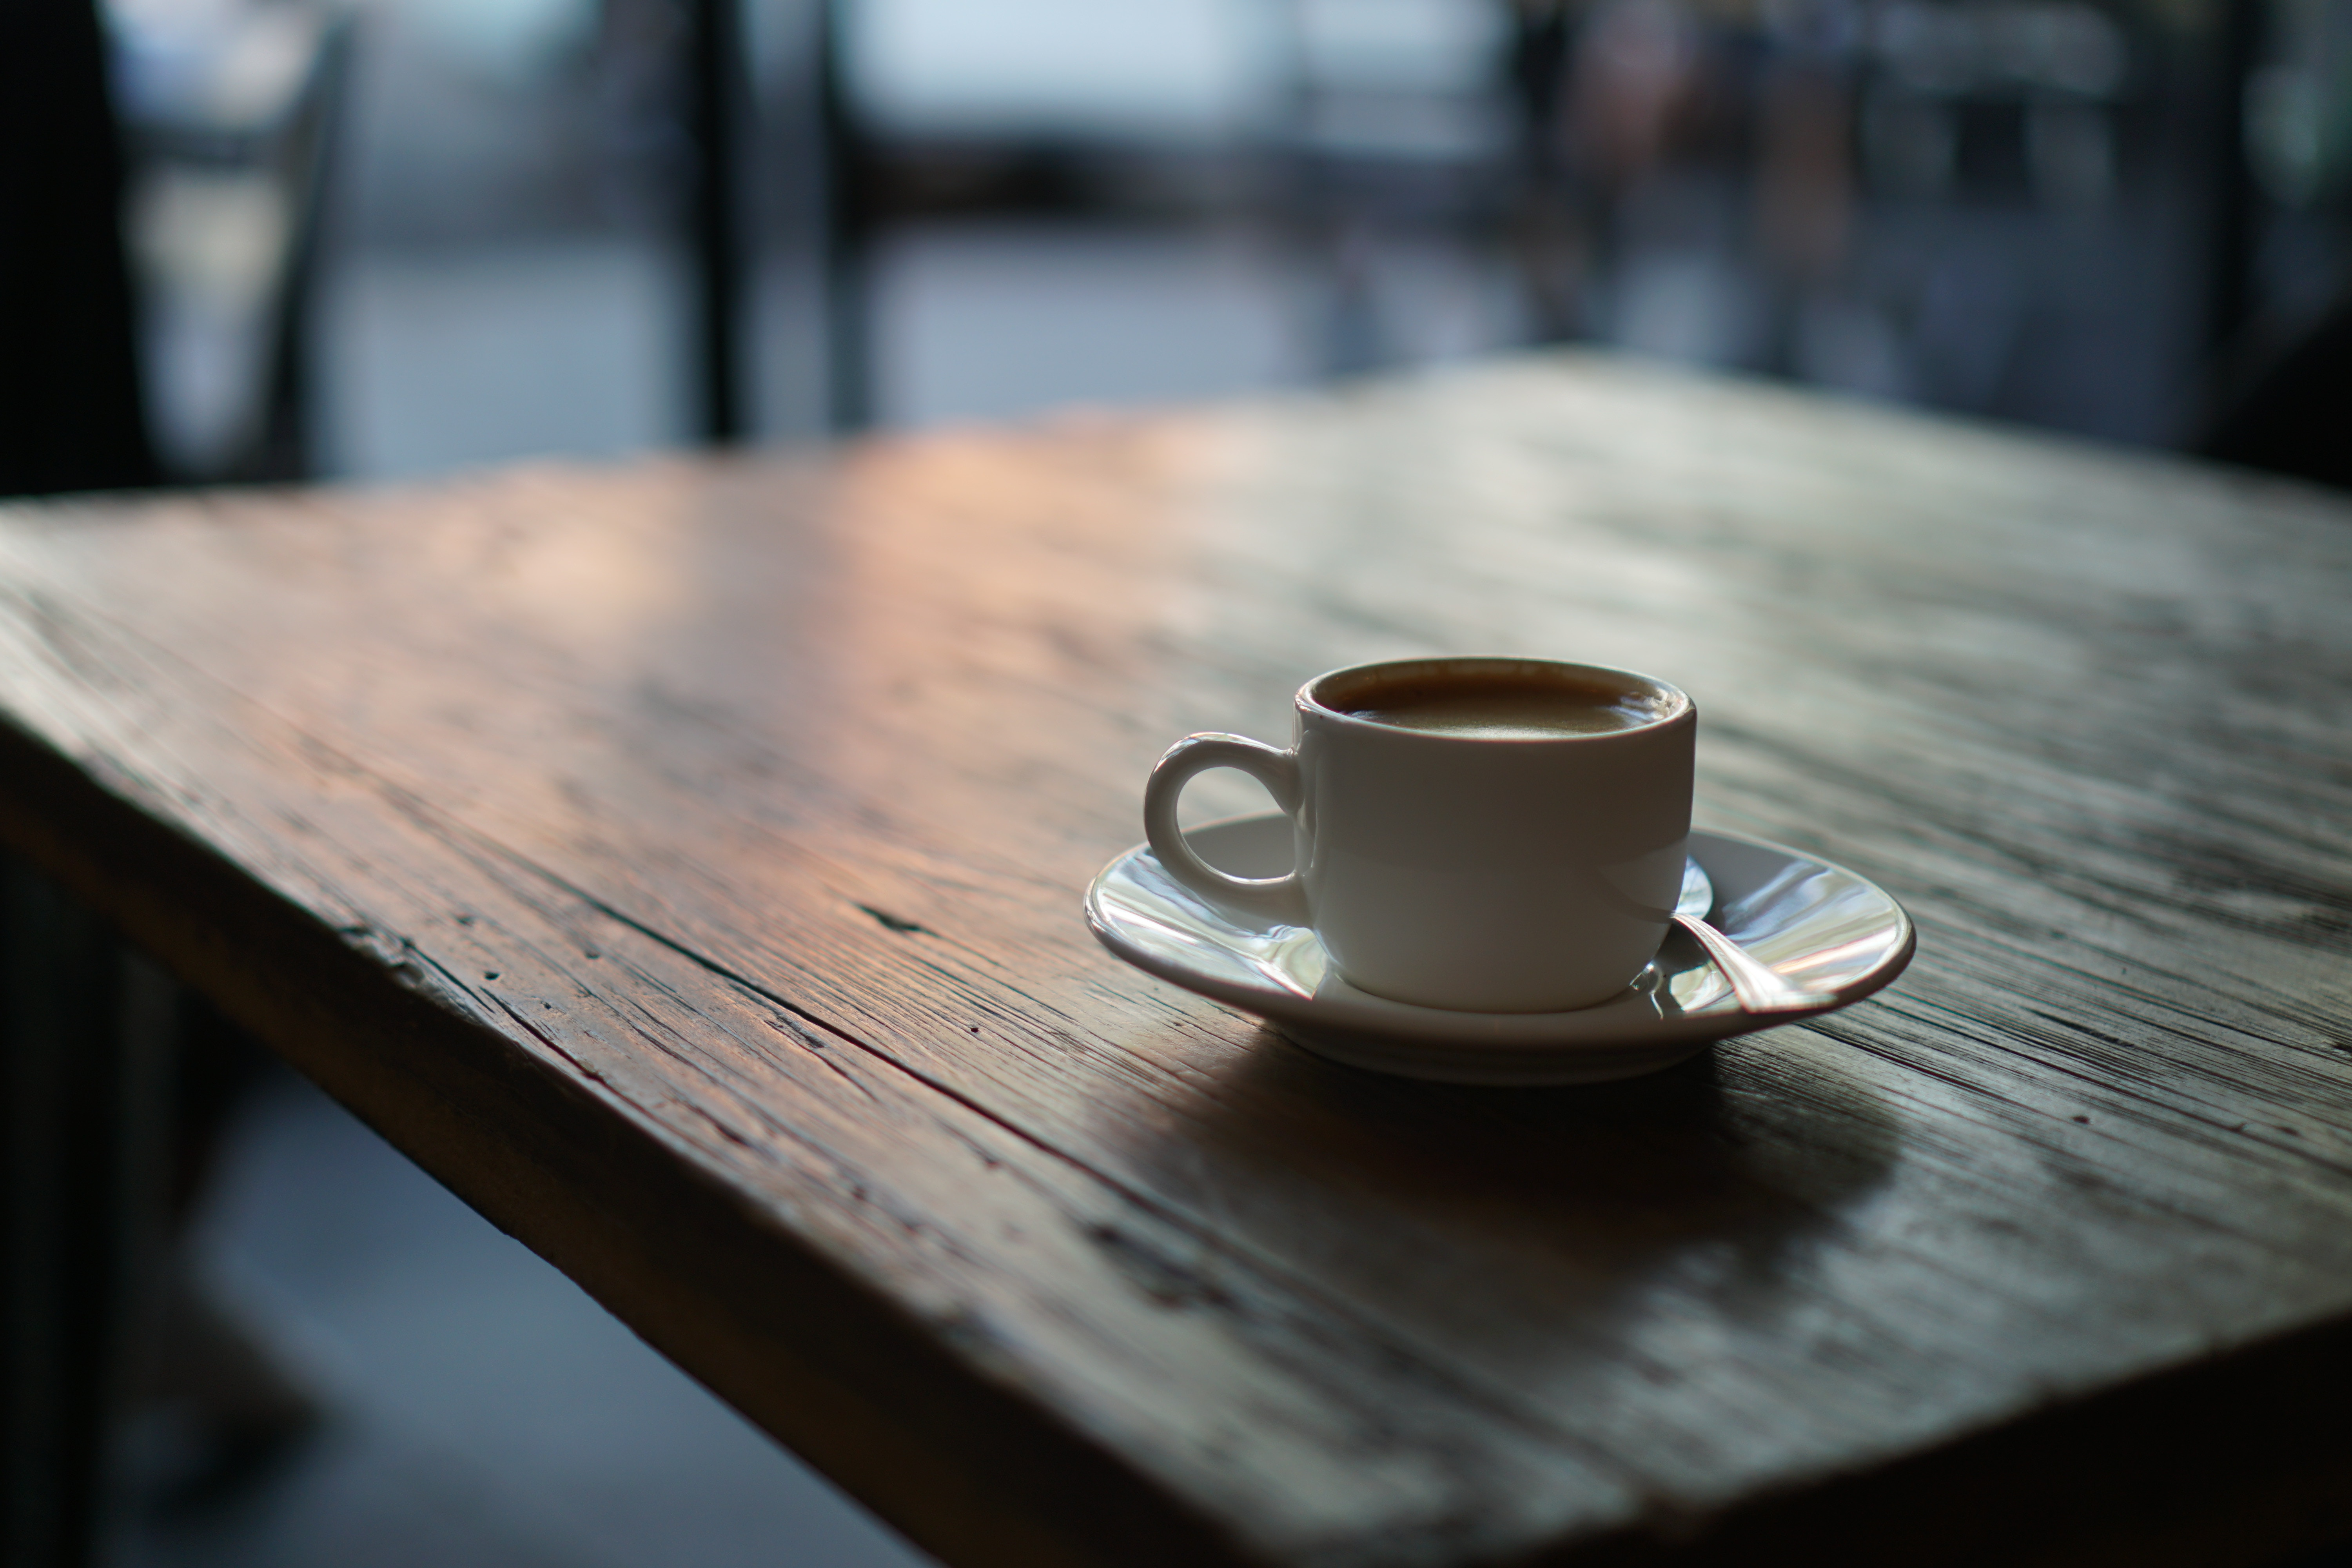 112489 download wallpaper Food, Cup, Coffee, Wood, Wooden, Surface screensavers and pictures for free